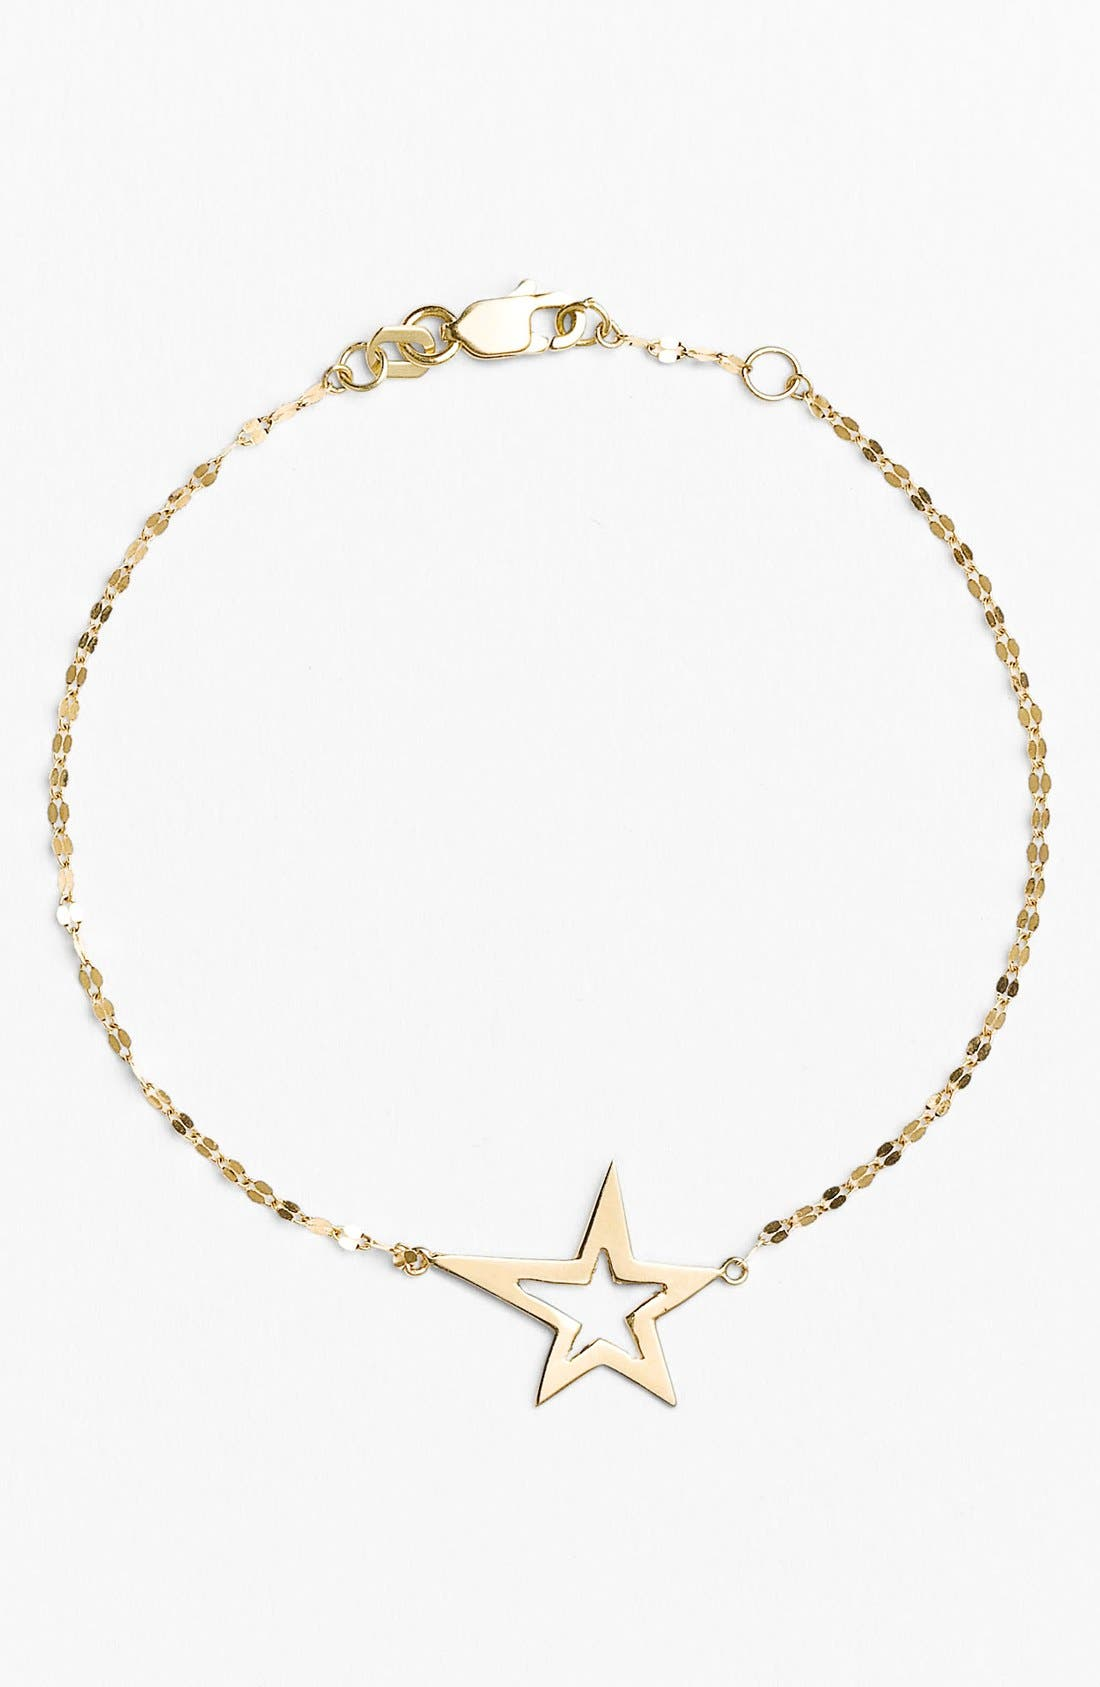 Main Image - Lana Jewelry Star Station Bracelet